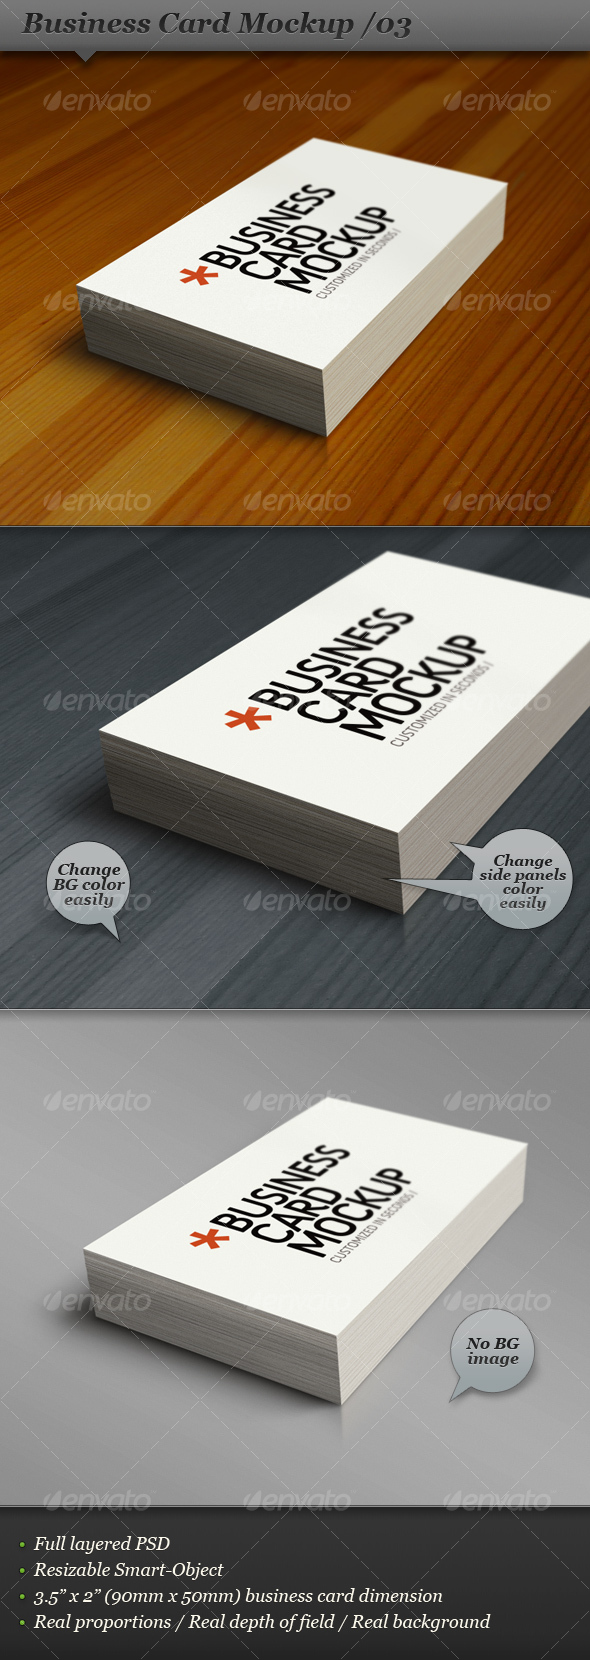 Business card mockup display - Smart template 03 - Business Cards Print